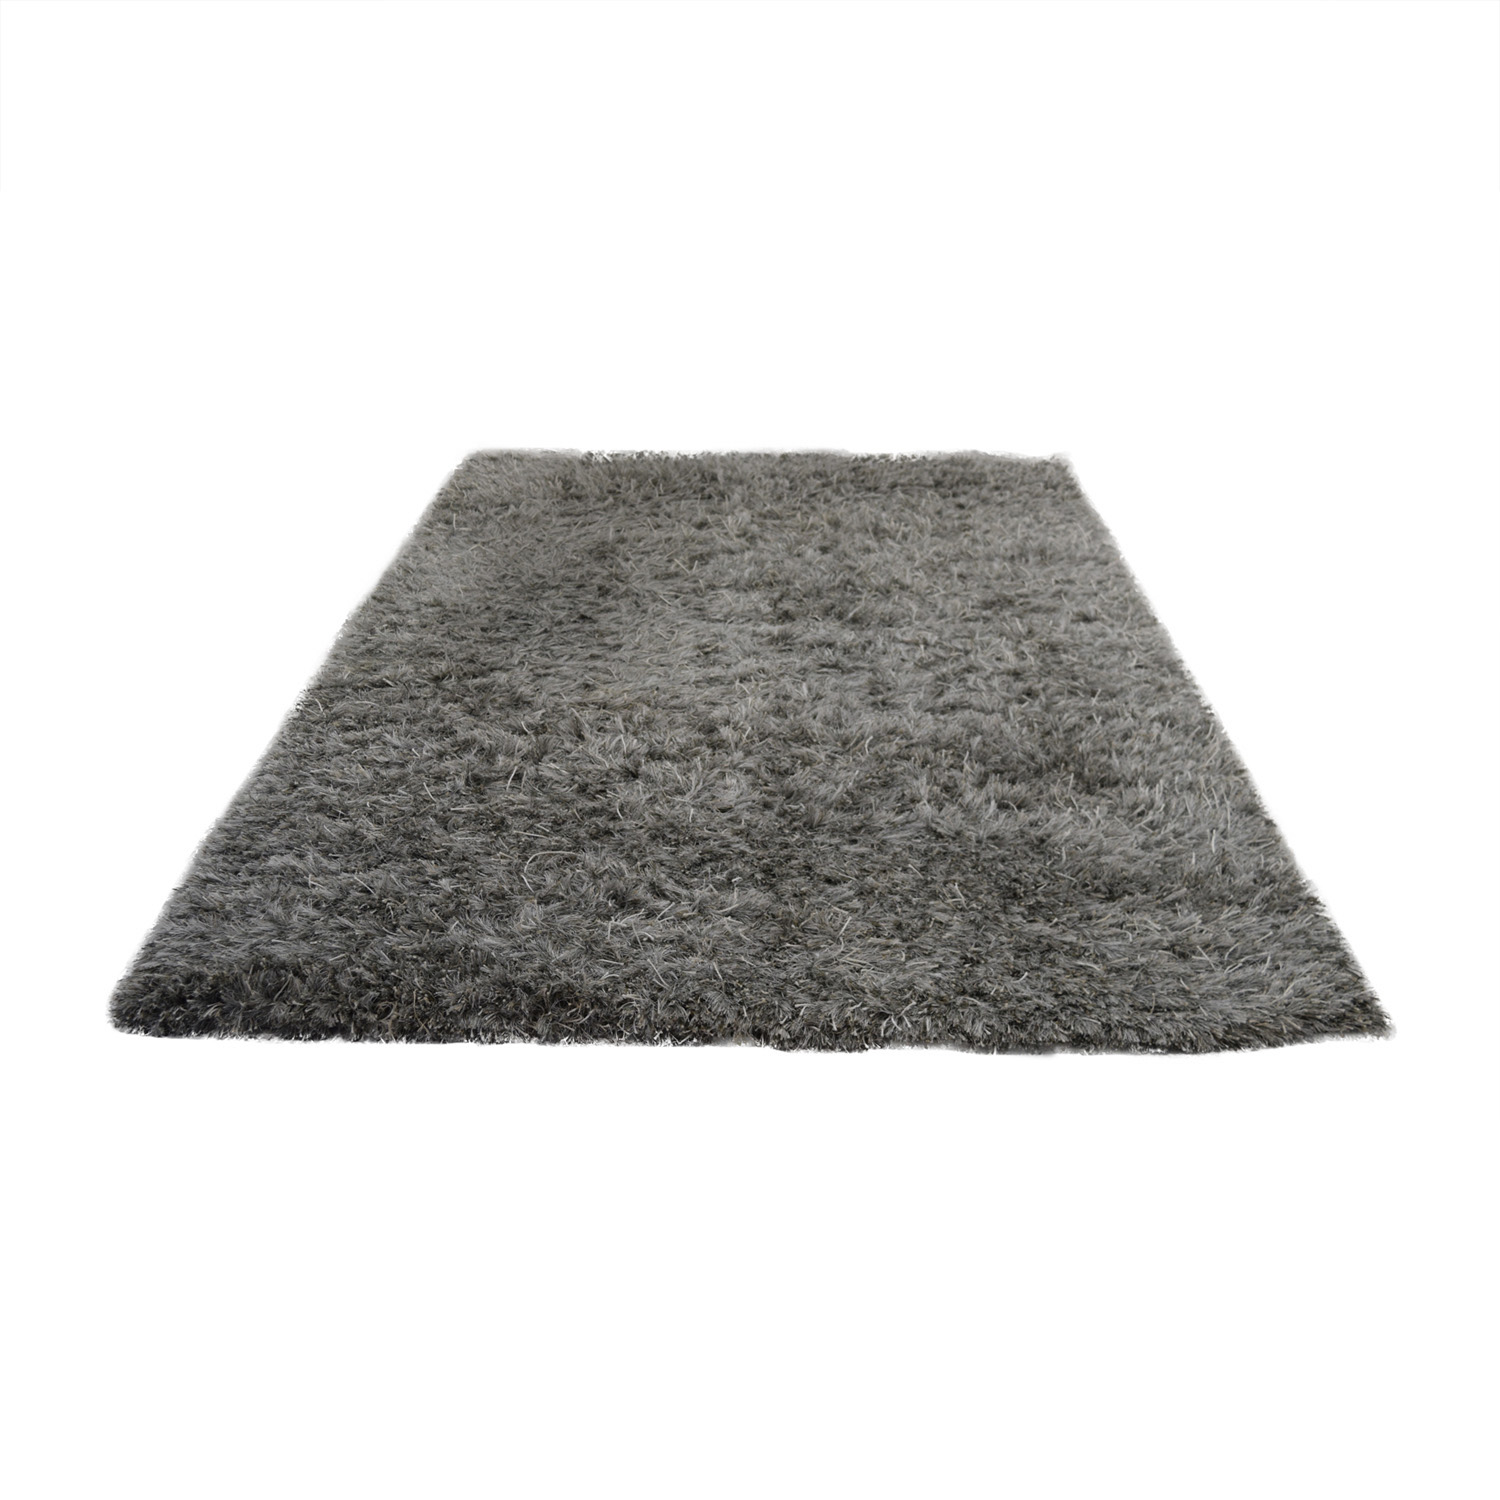 Grey Shag Rug price